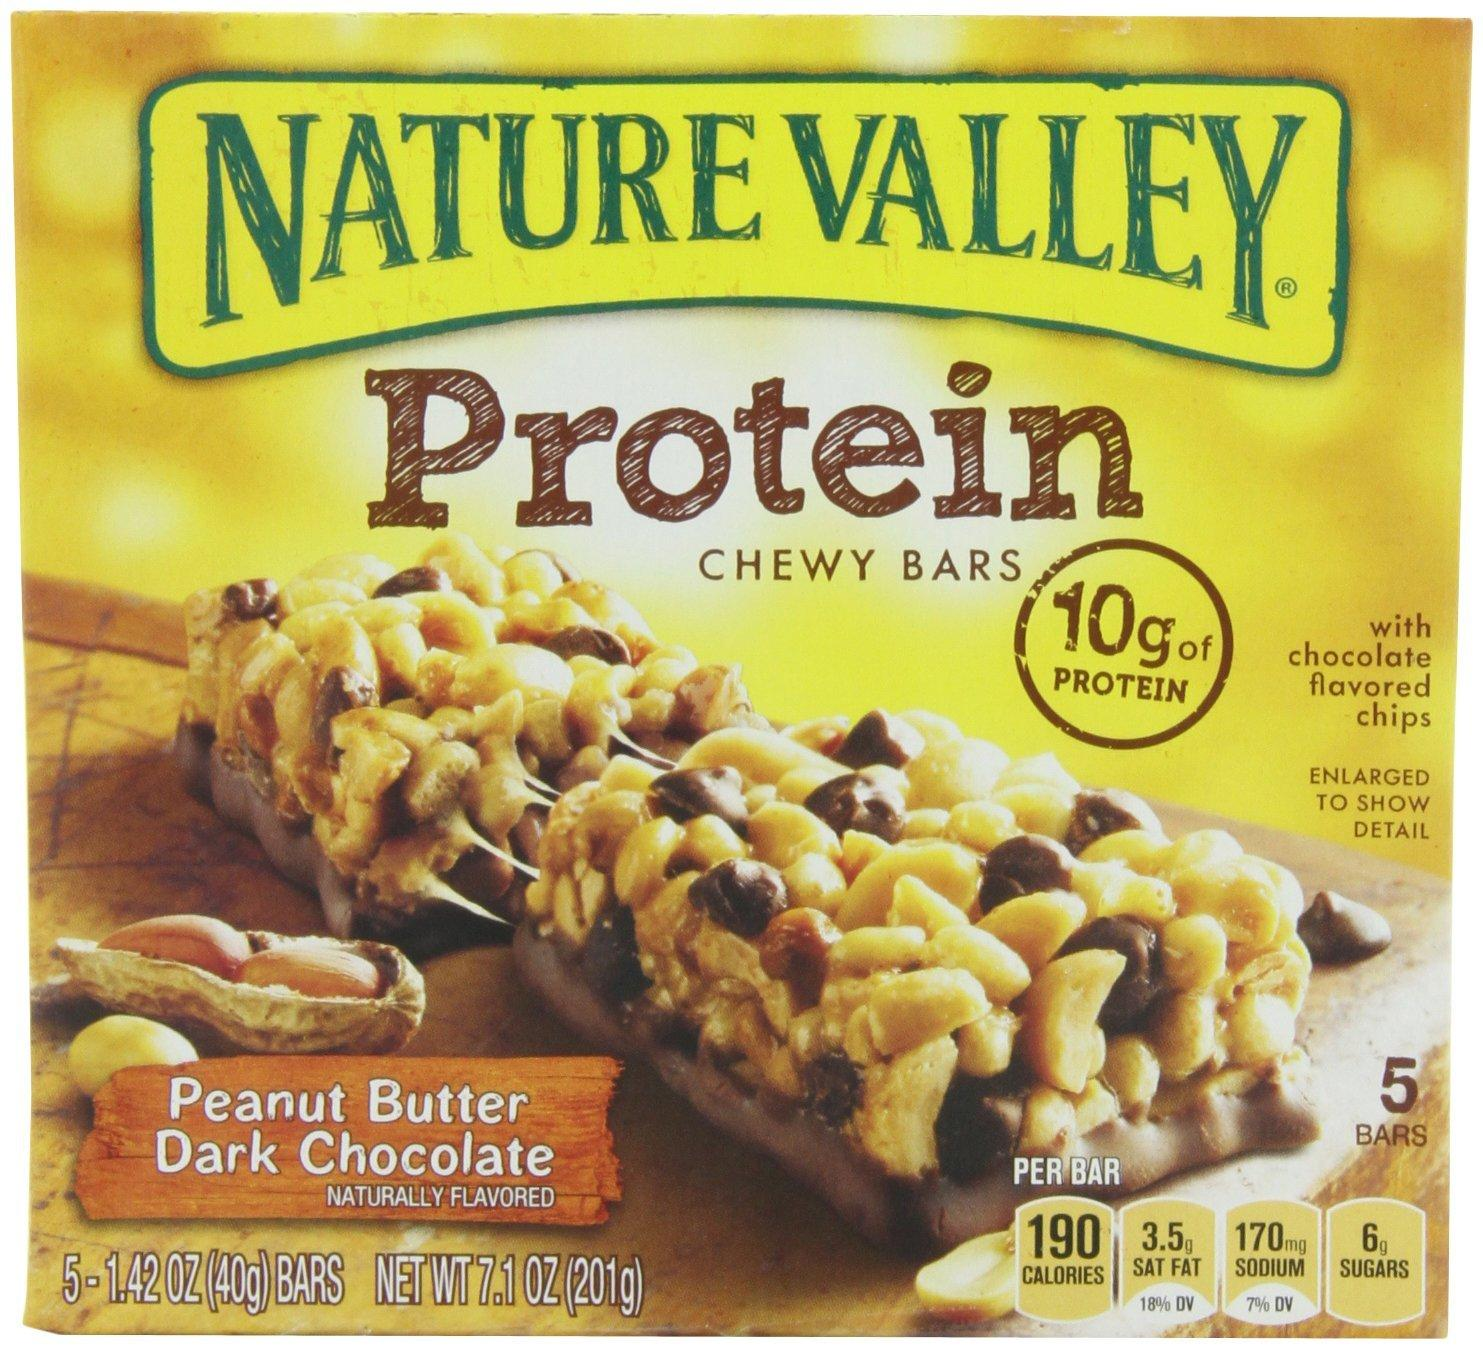 Nature Valley Chewy Protein Bars Peanut Butter Dark Chocolate, 5X1.42 Oz Bars (Pack of 4)